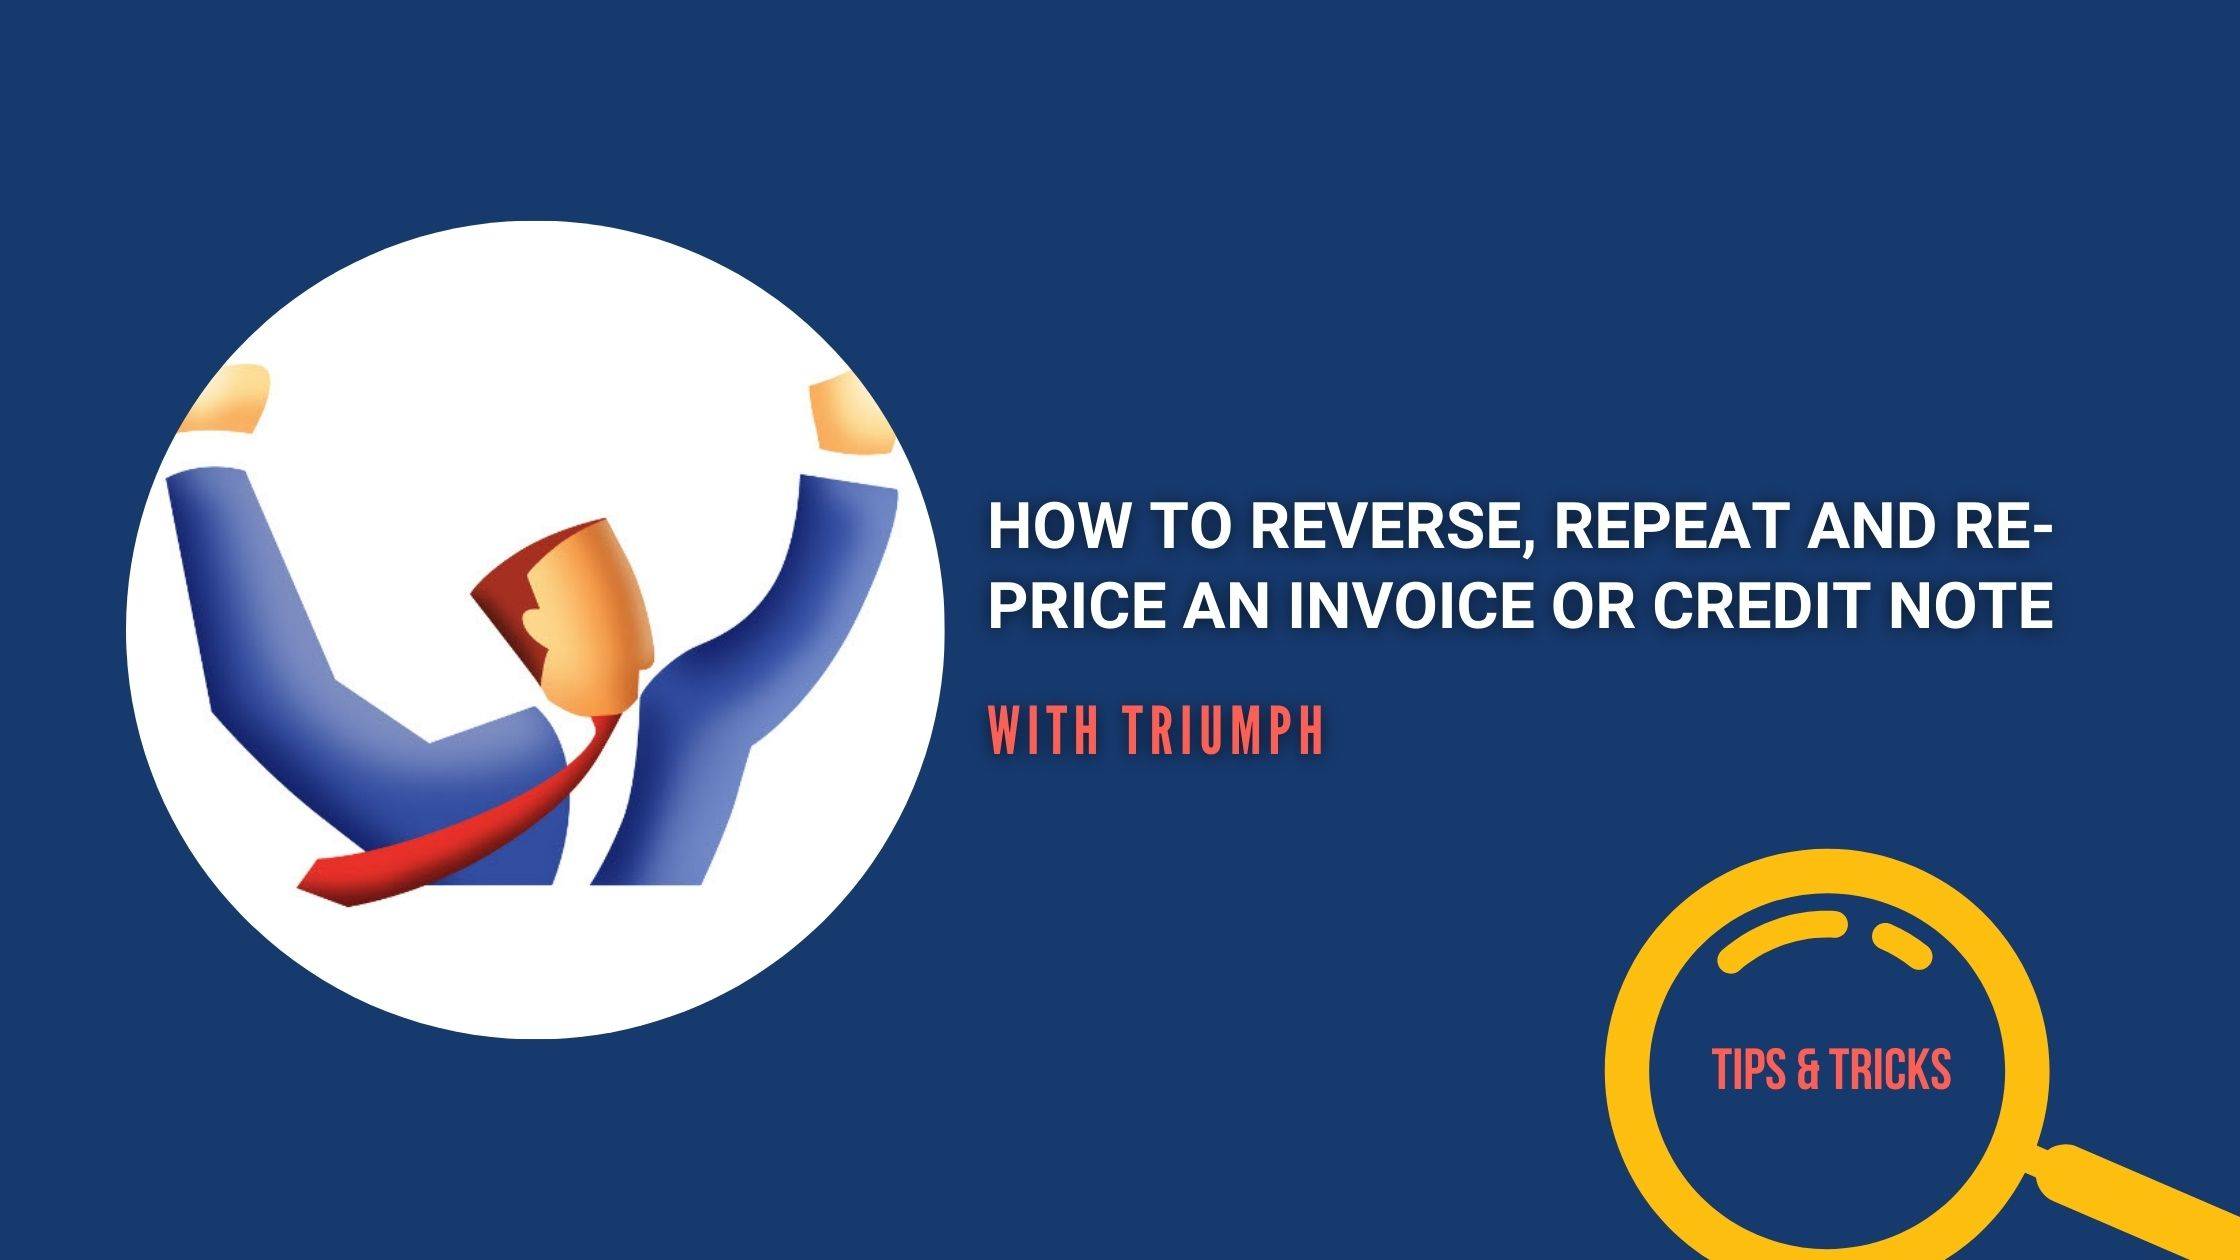 reverse, repeat and re-price an invoice or credit note